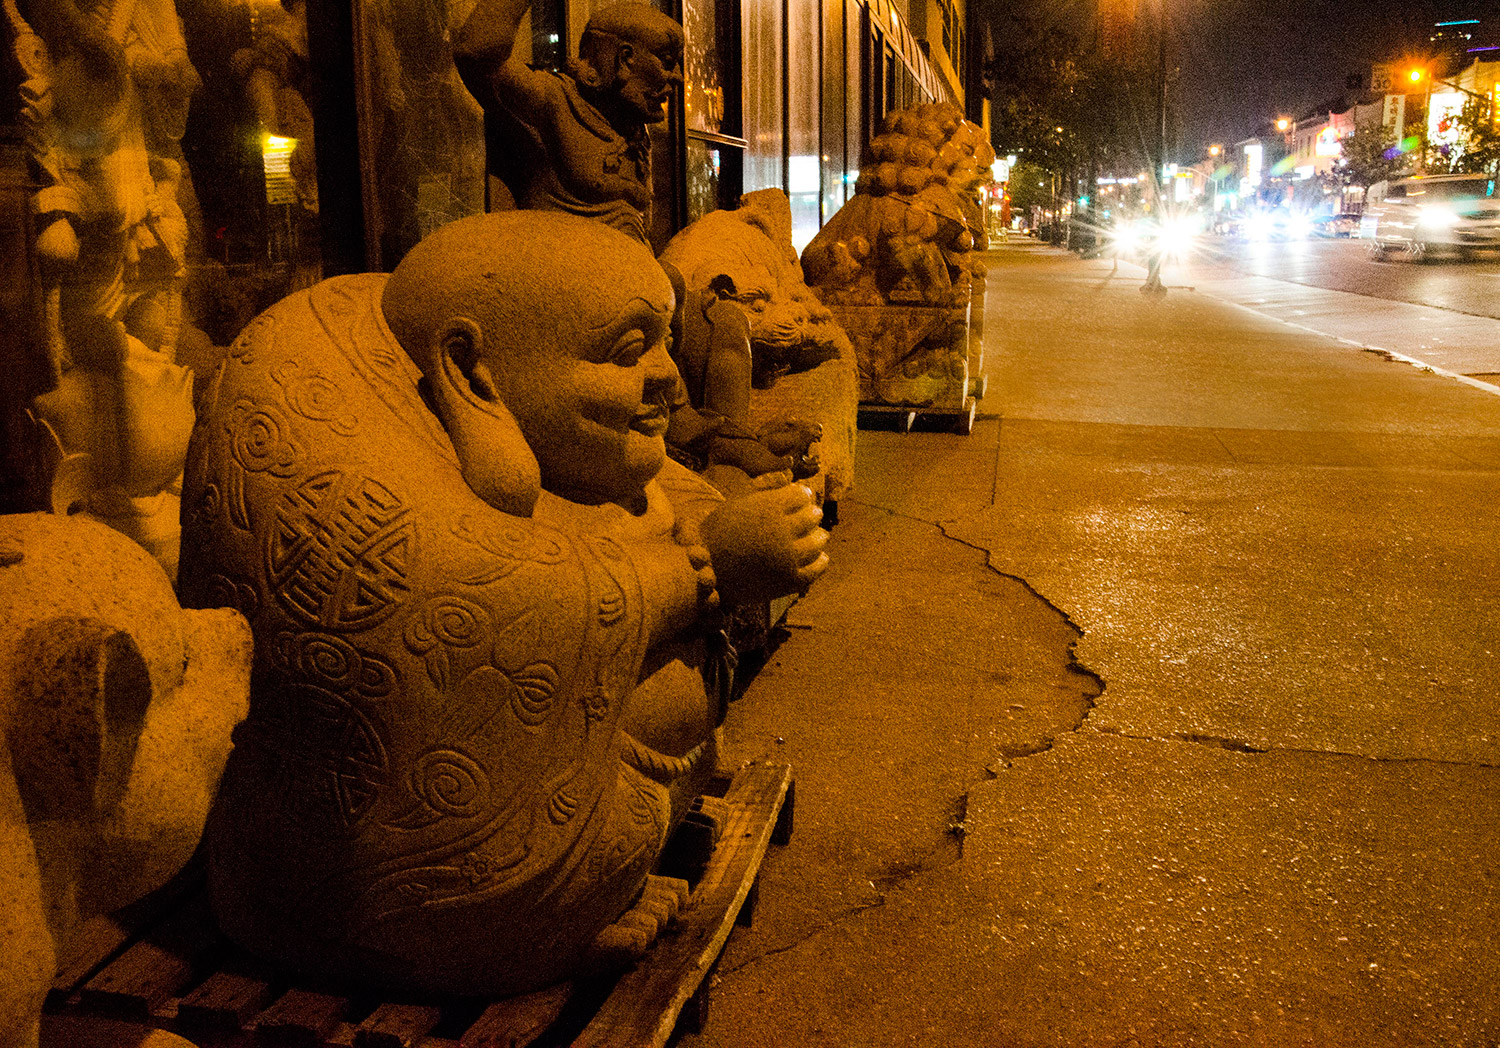 Small, stooped stone statues line a sidewalk.